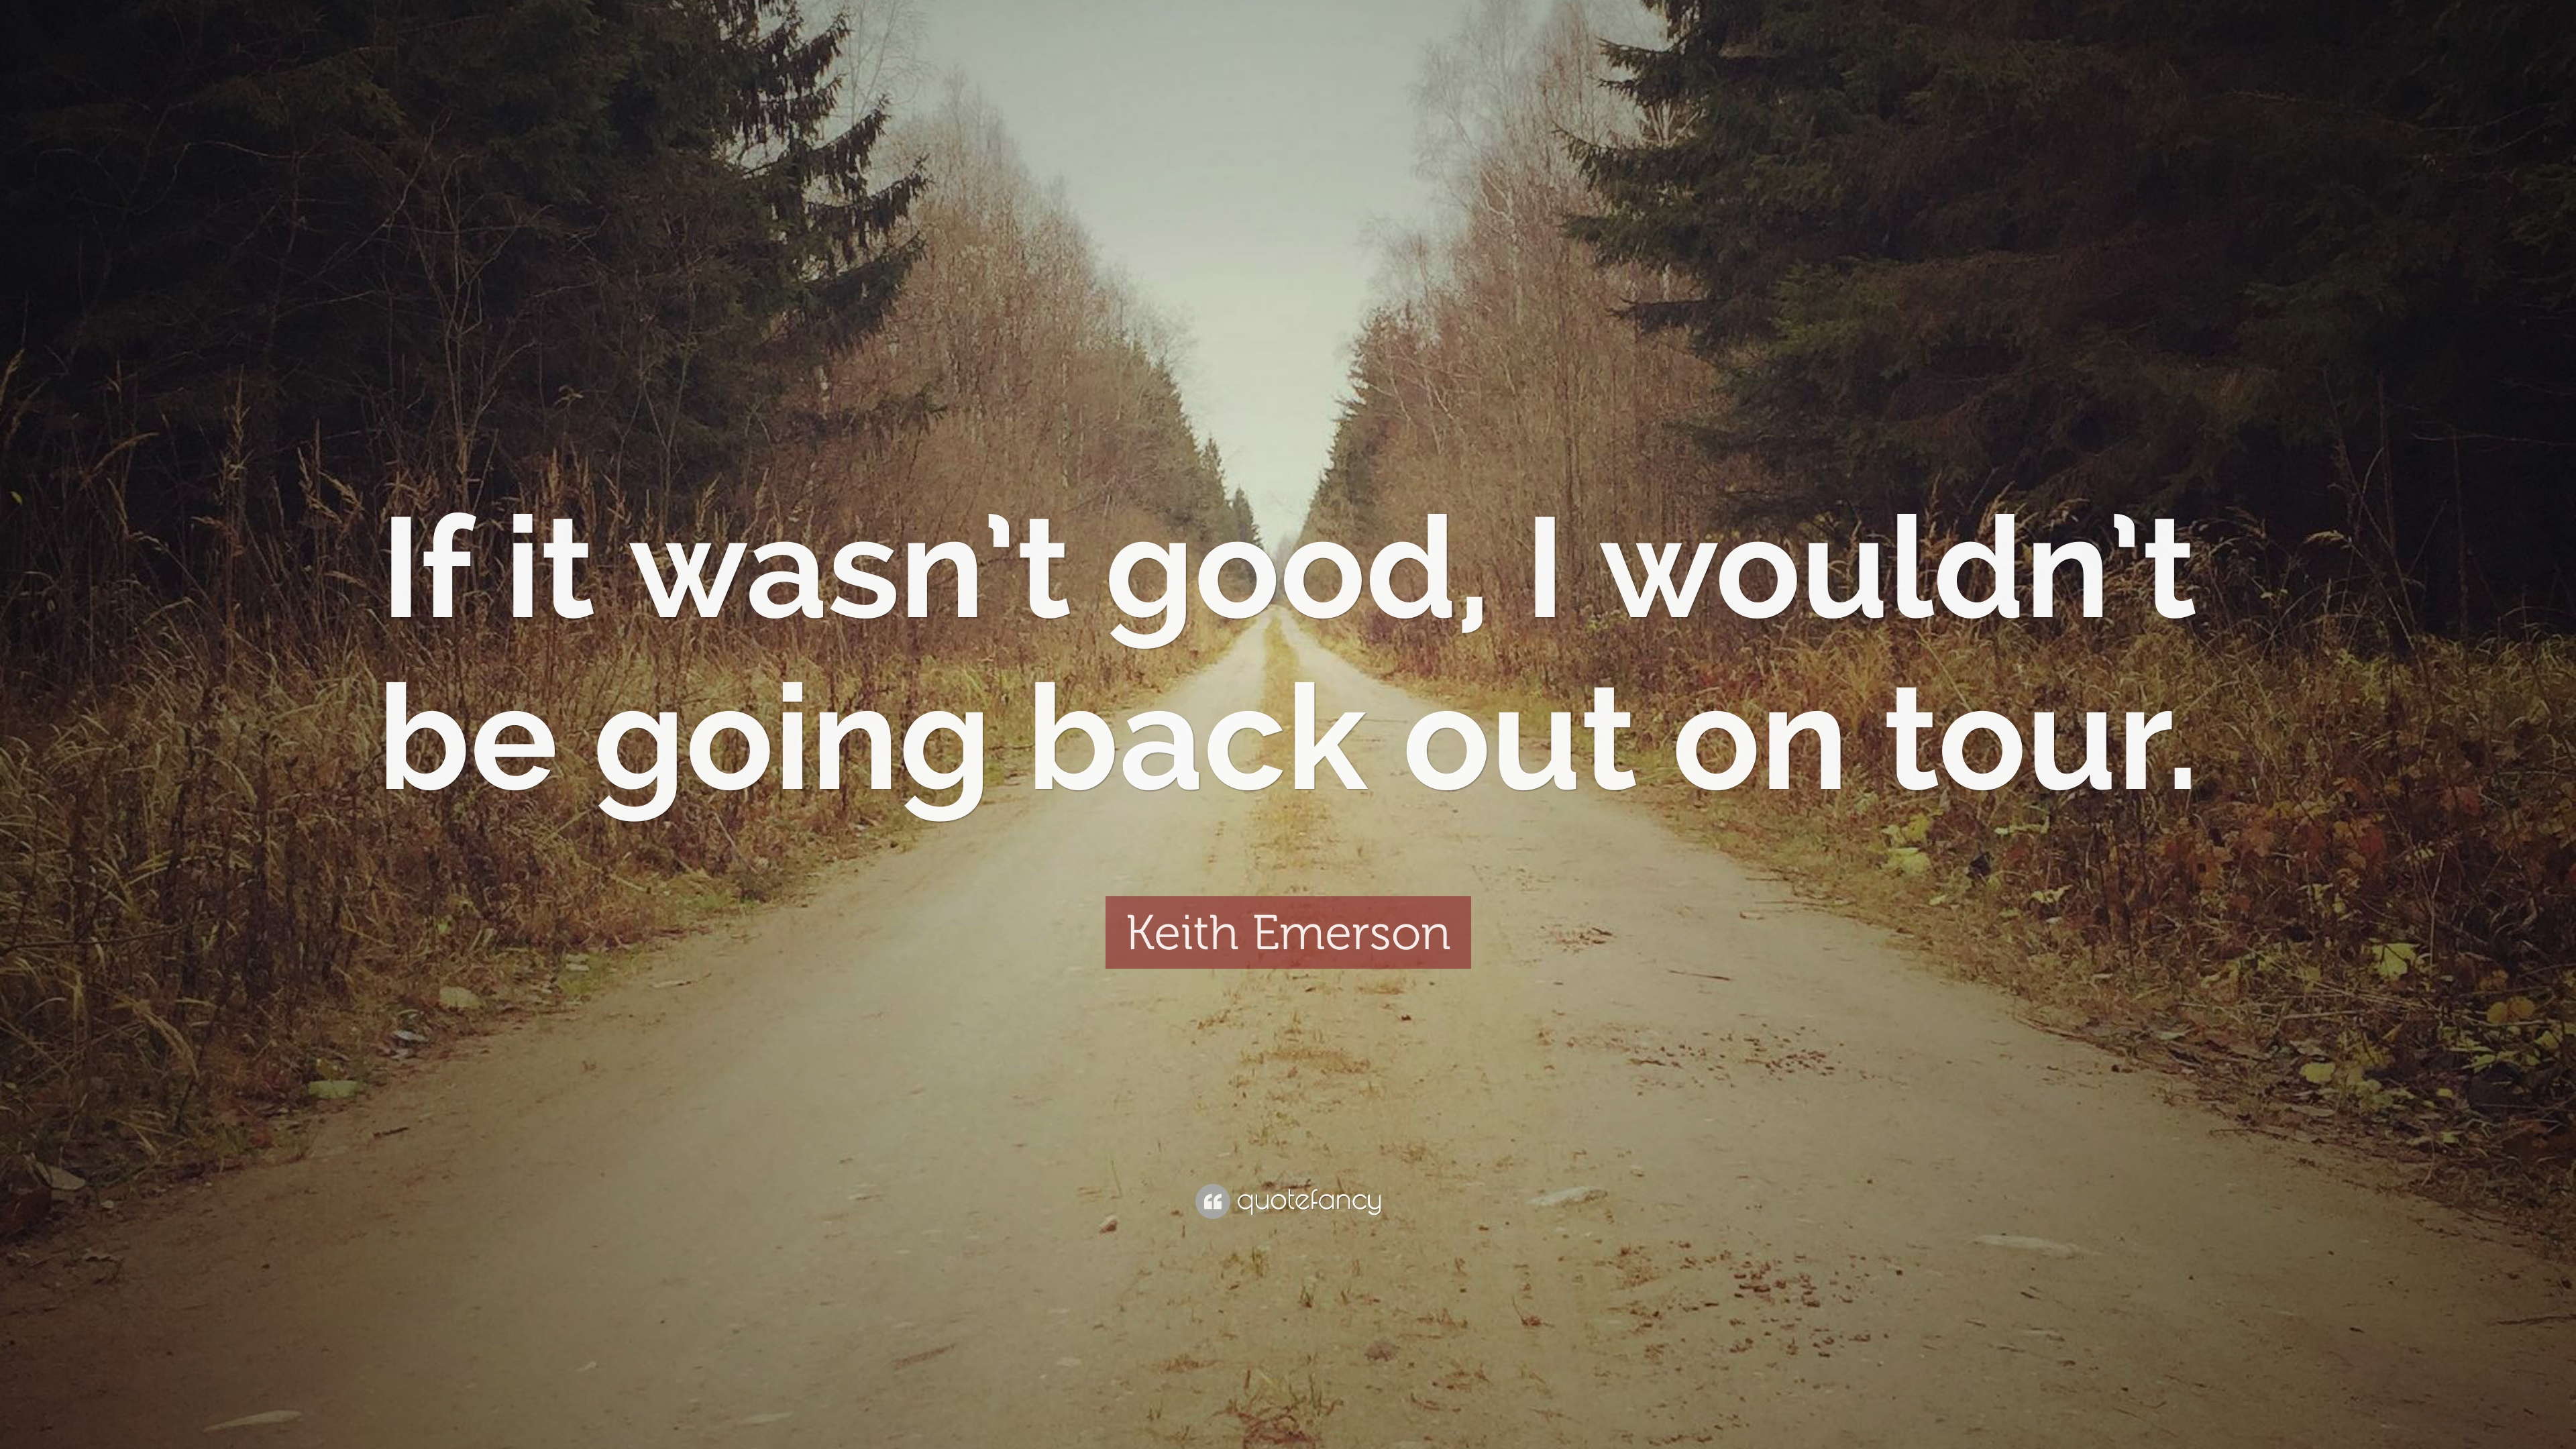 Keith Emerson Quotes (20 Wallpapers)